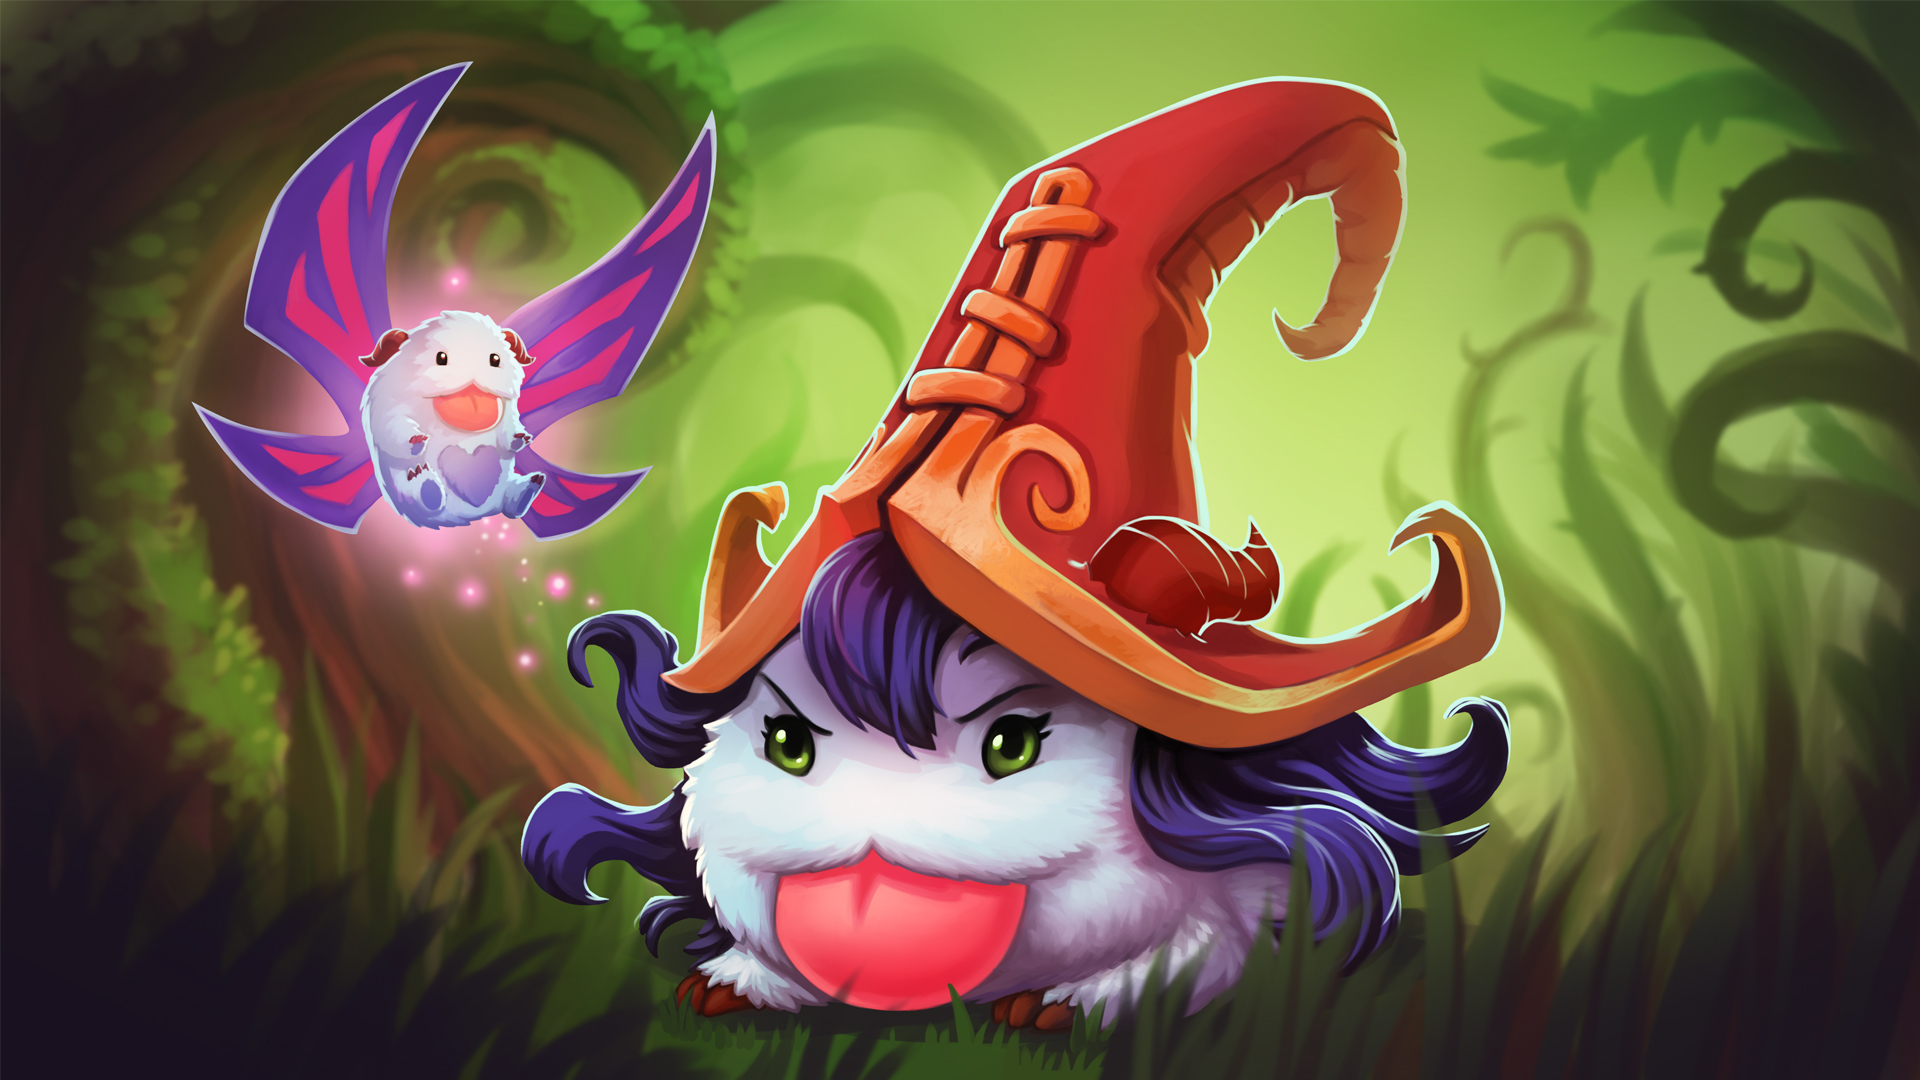 League of Legends images Poro Lulu HD wallpaper and background photos